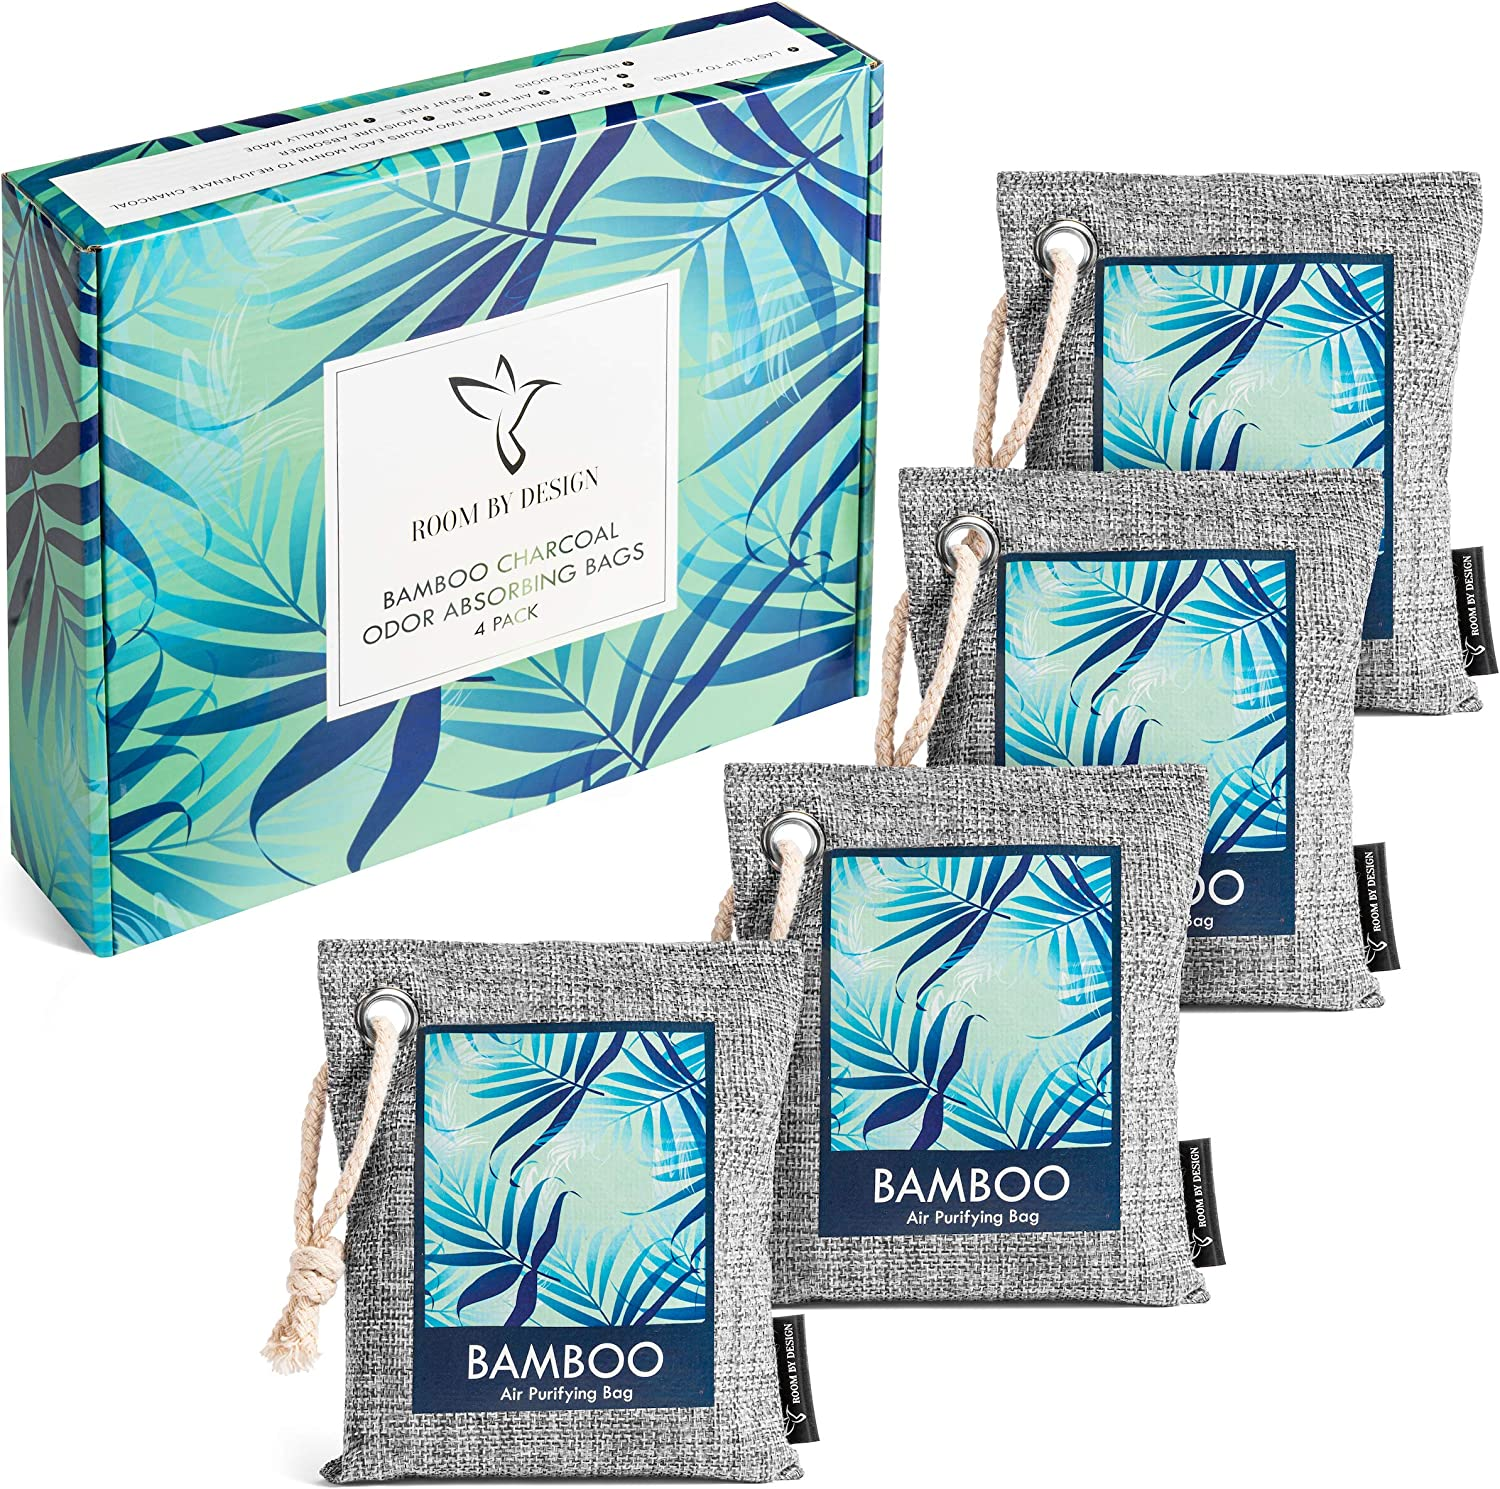 Bamboo Charcoal Air Purifying Bags 4 Pack - Natural Odor Eliminator and Absorber - Activated Charcoal Air Freshener Bag and Deodorizer for Home Car Work - Kid Pet friendly Smell Remover 4x200g